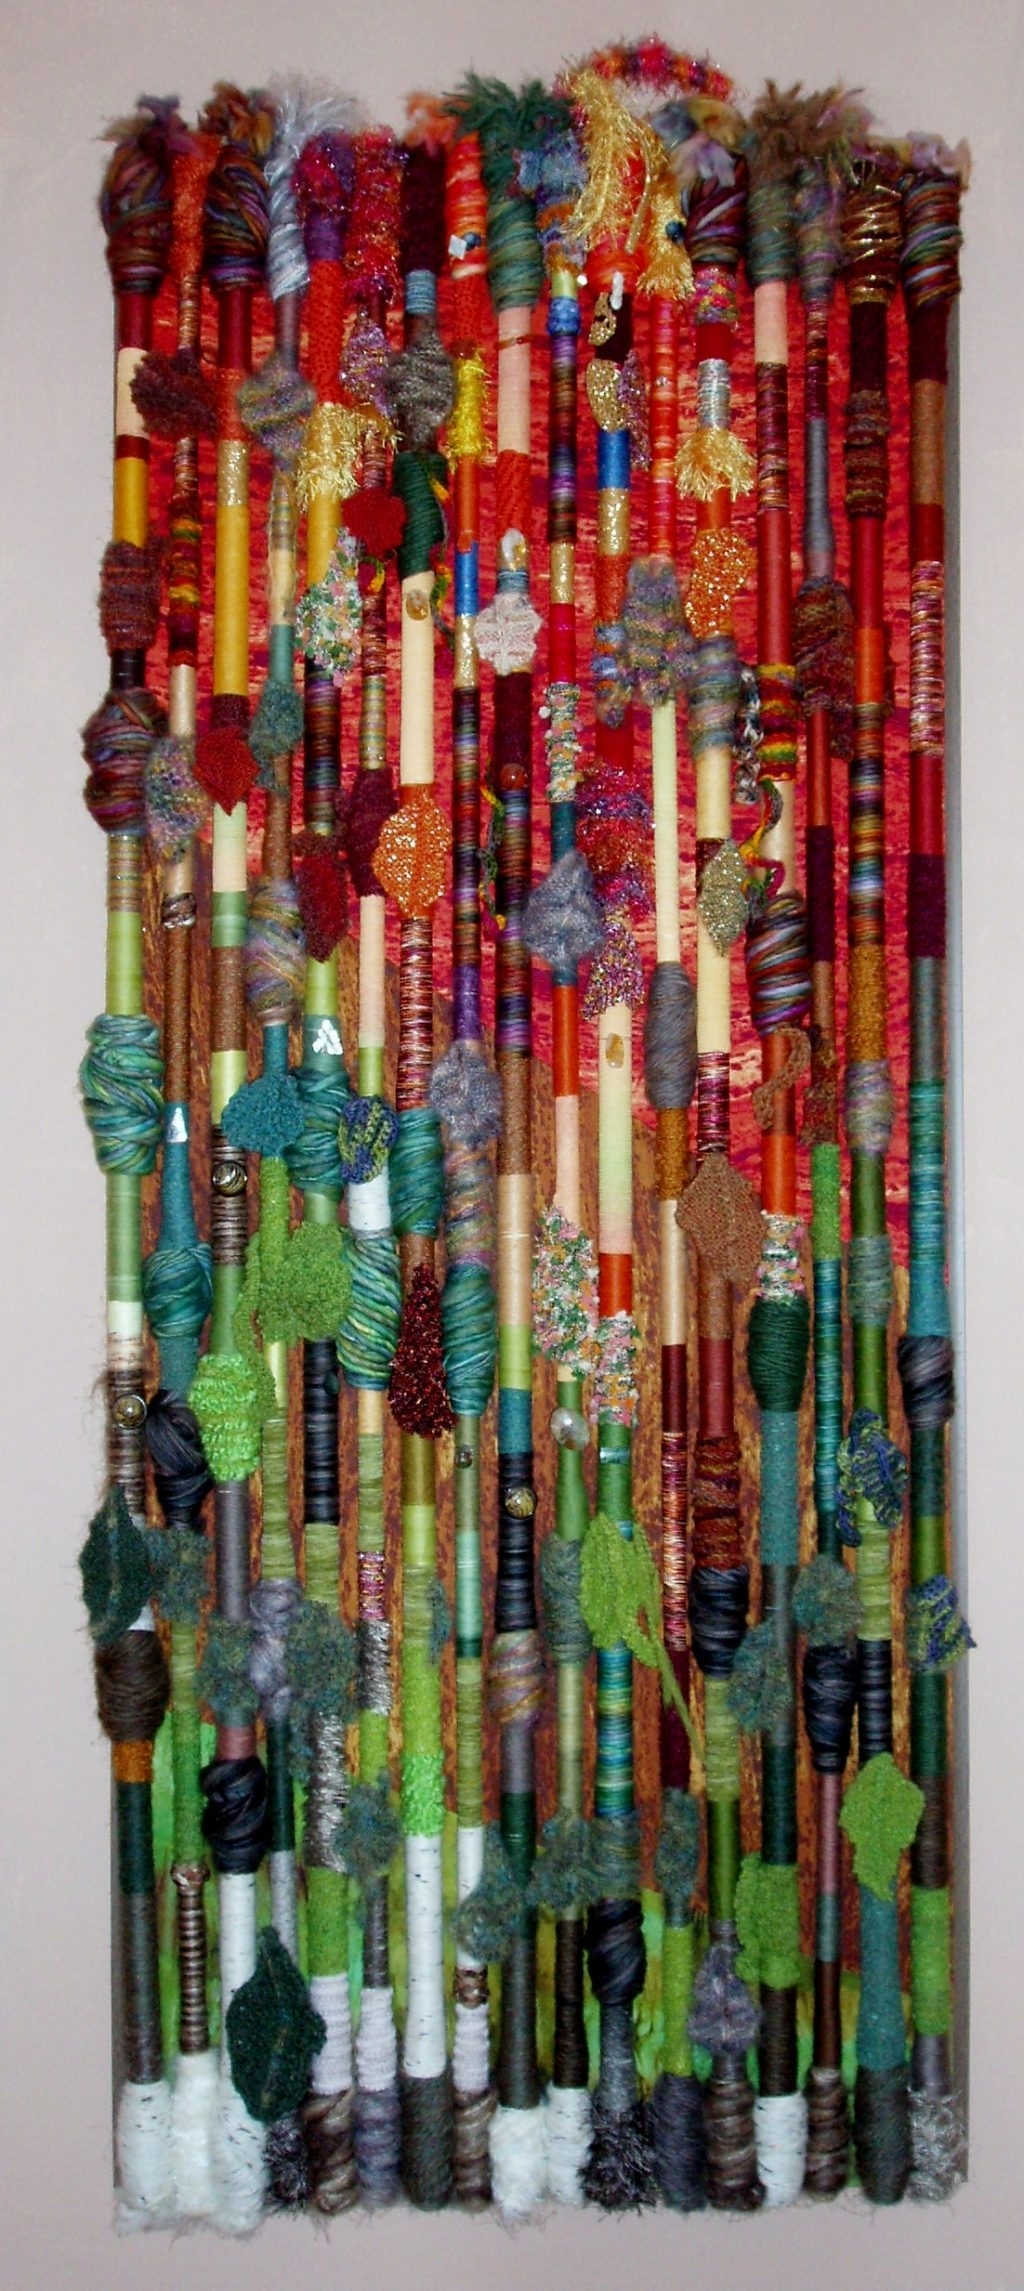 Inspirational Design Ideas Textile Wall Hangings With Fiber Art Pertaining To Most Recently Released Contemporary Textile Wall Art (Gallery 2 of 15)